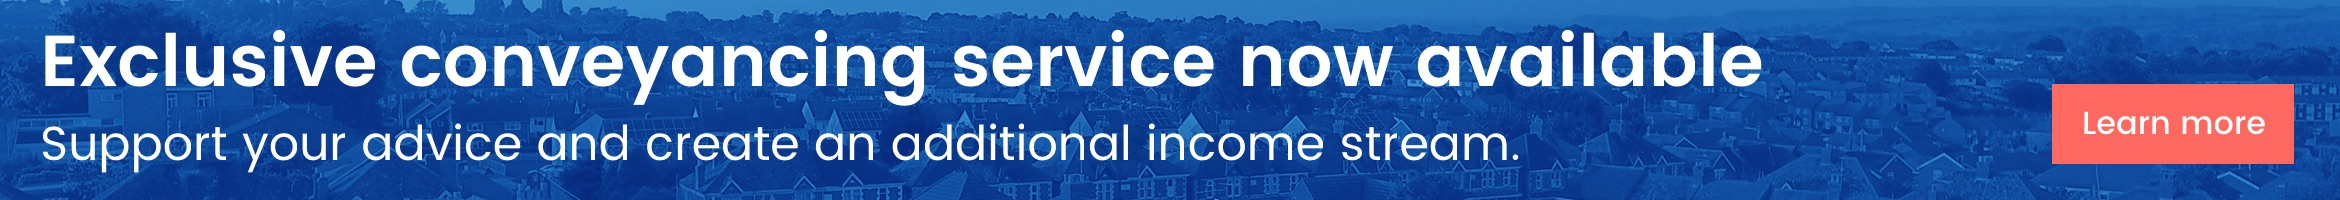 Exclusive conveyancing service now available